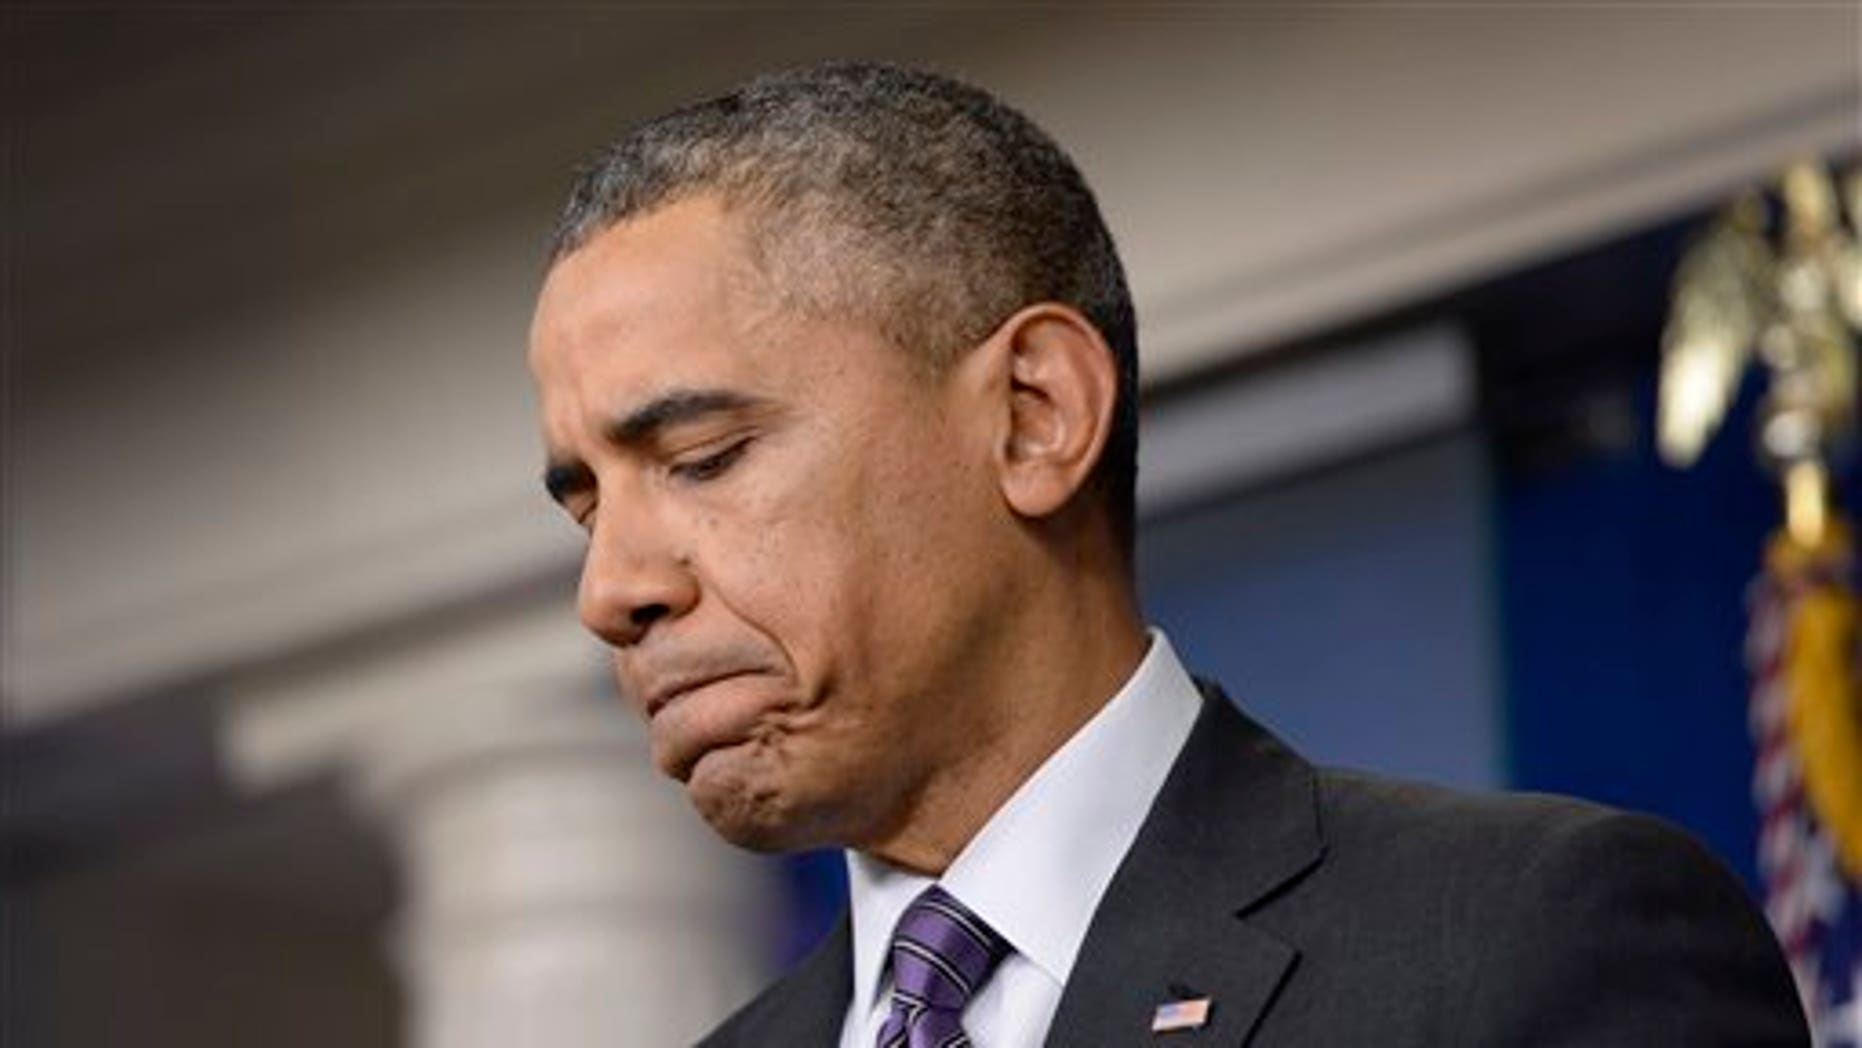 President Barack Obama pauses as he talks about the ferry disaster in South Korea at the start of a news conference in the Brady Press Briefing Room of the White House in Washington, Thursday, April 17, 2014. Obama was asked about the Affordable Care Act, the crisis in Ukraine and other issues. (AP Photo/Susan Walsh)